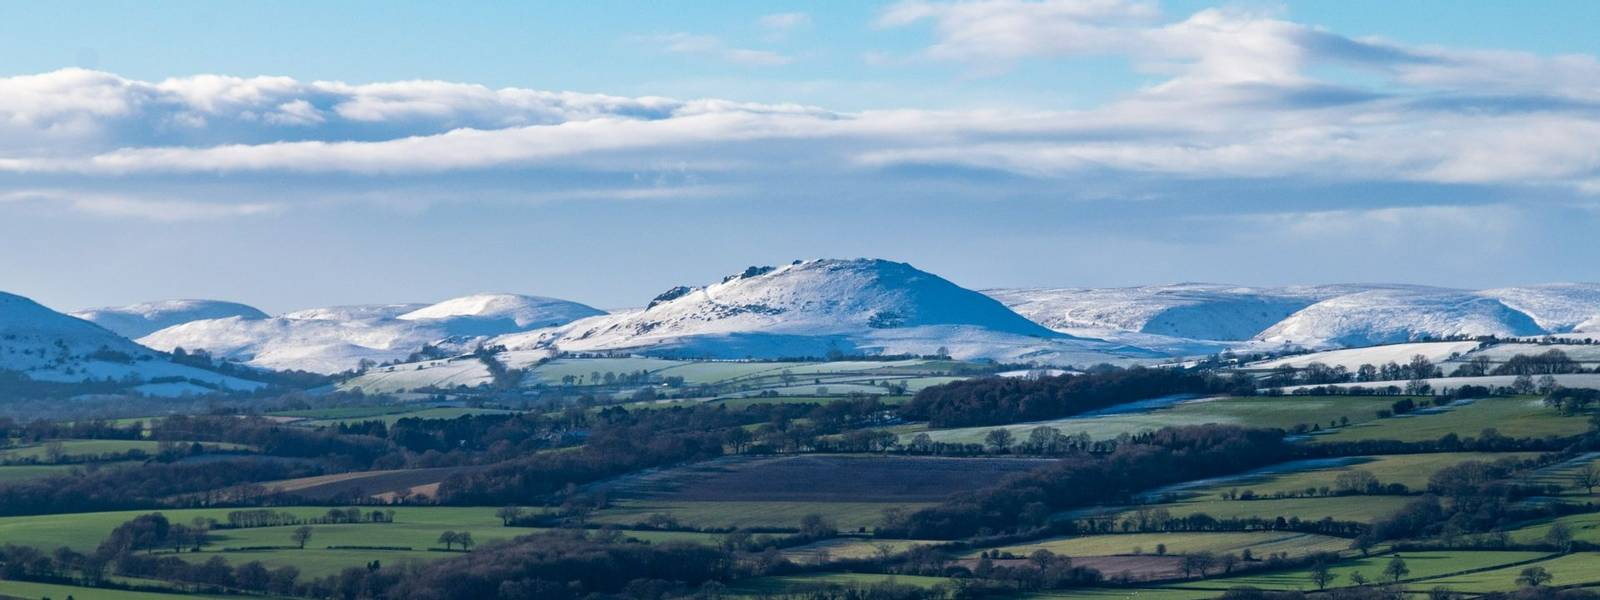 Shropshire Hills - Spring and Winter - AdobeStock_186233811.jpeg